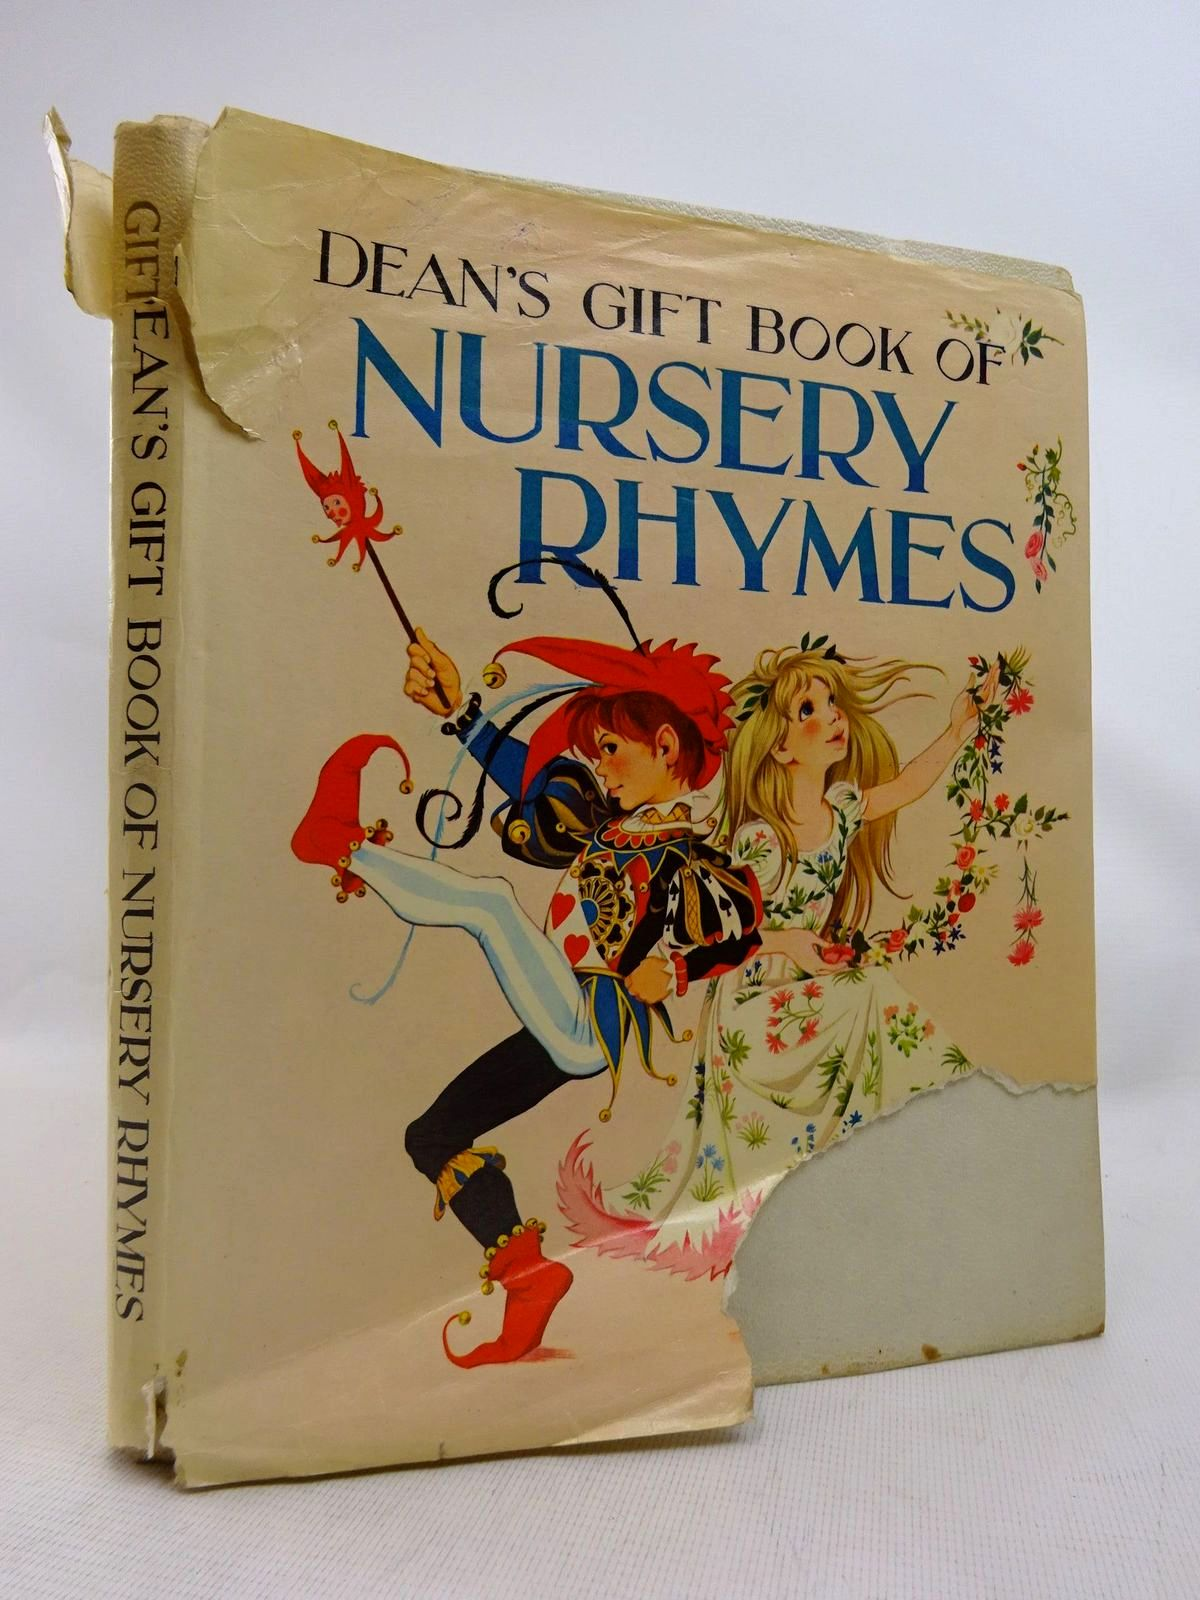 Photo of DEAN'S GIFT BOOK OF NURSERY RHYMES illustrated by Johnstone, Janet Grahame<br />Johnstone, Anne Grahame published by Dean & Son Ltd. (STOCK CODE: 1816511)  for sale by Stella & Rose's Books